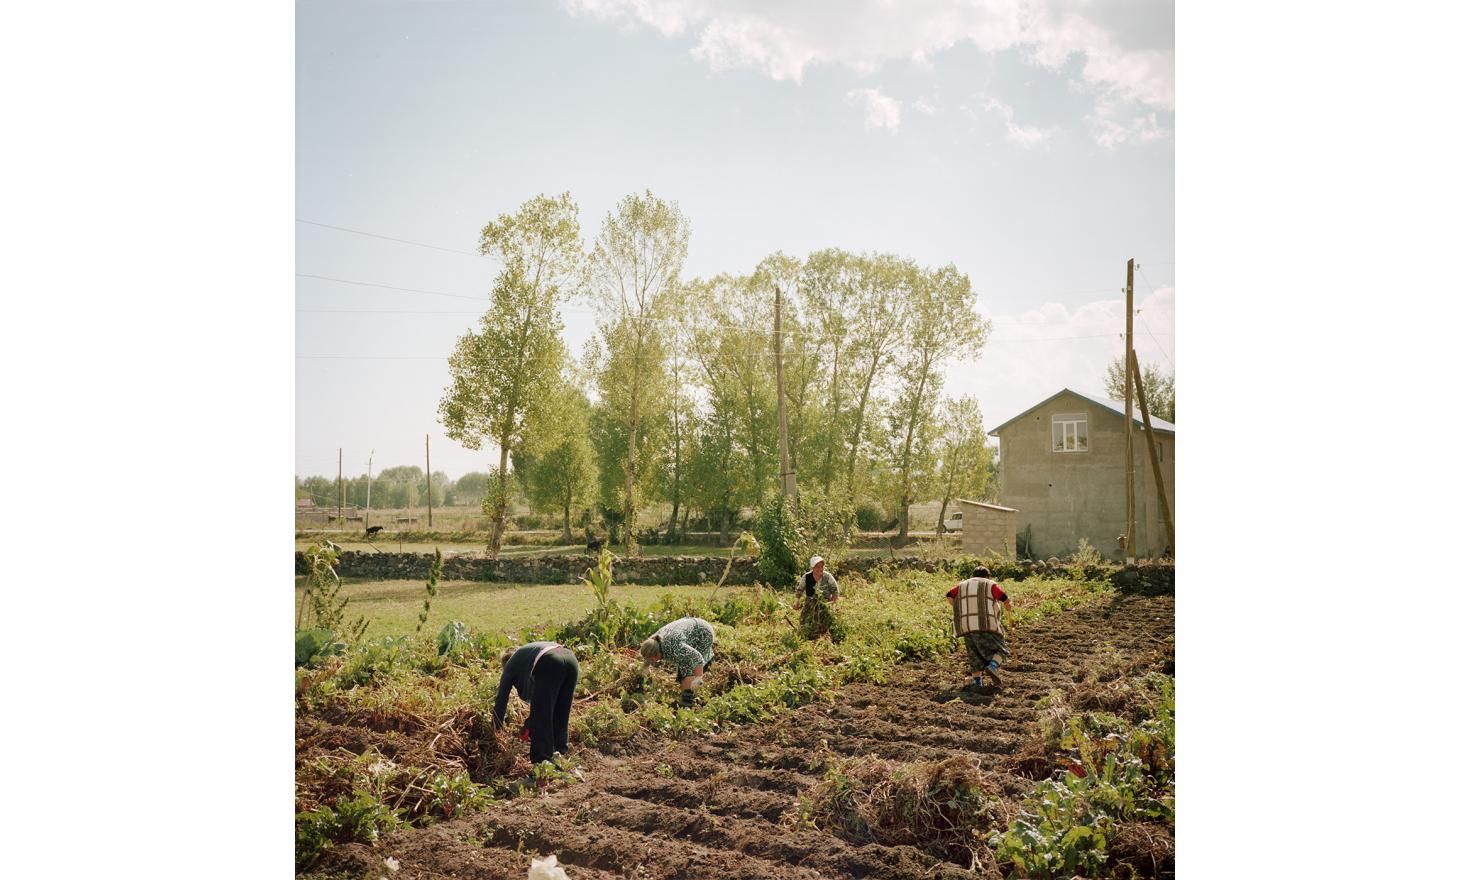 The children of Tamara (2nd from the left) are in Russia so she has to harvest potatoes. Her neighbors came to give her a hand. Without men, the solidarity between women neighbors and friends can lighten the work tasks.